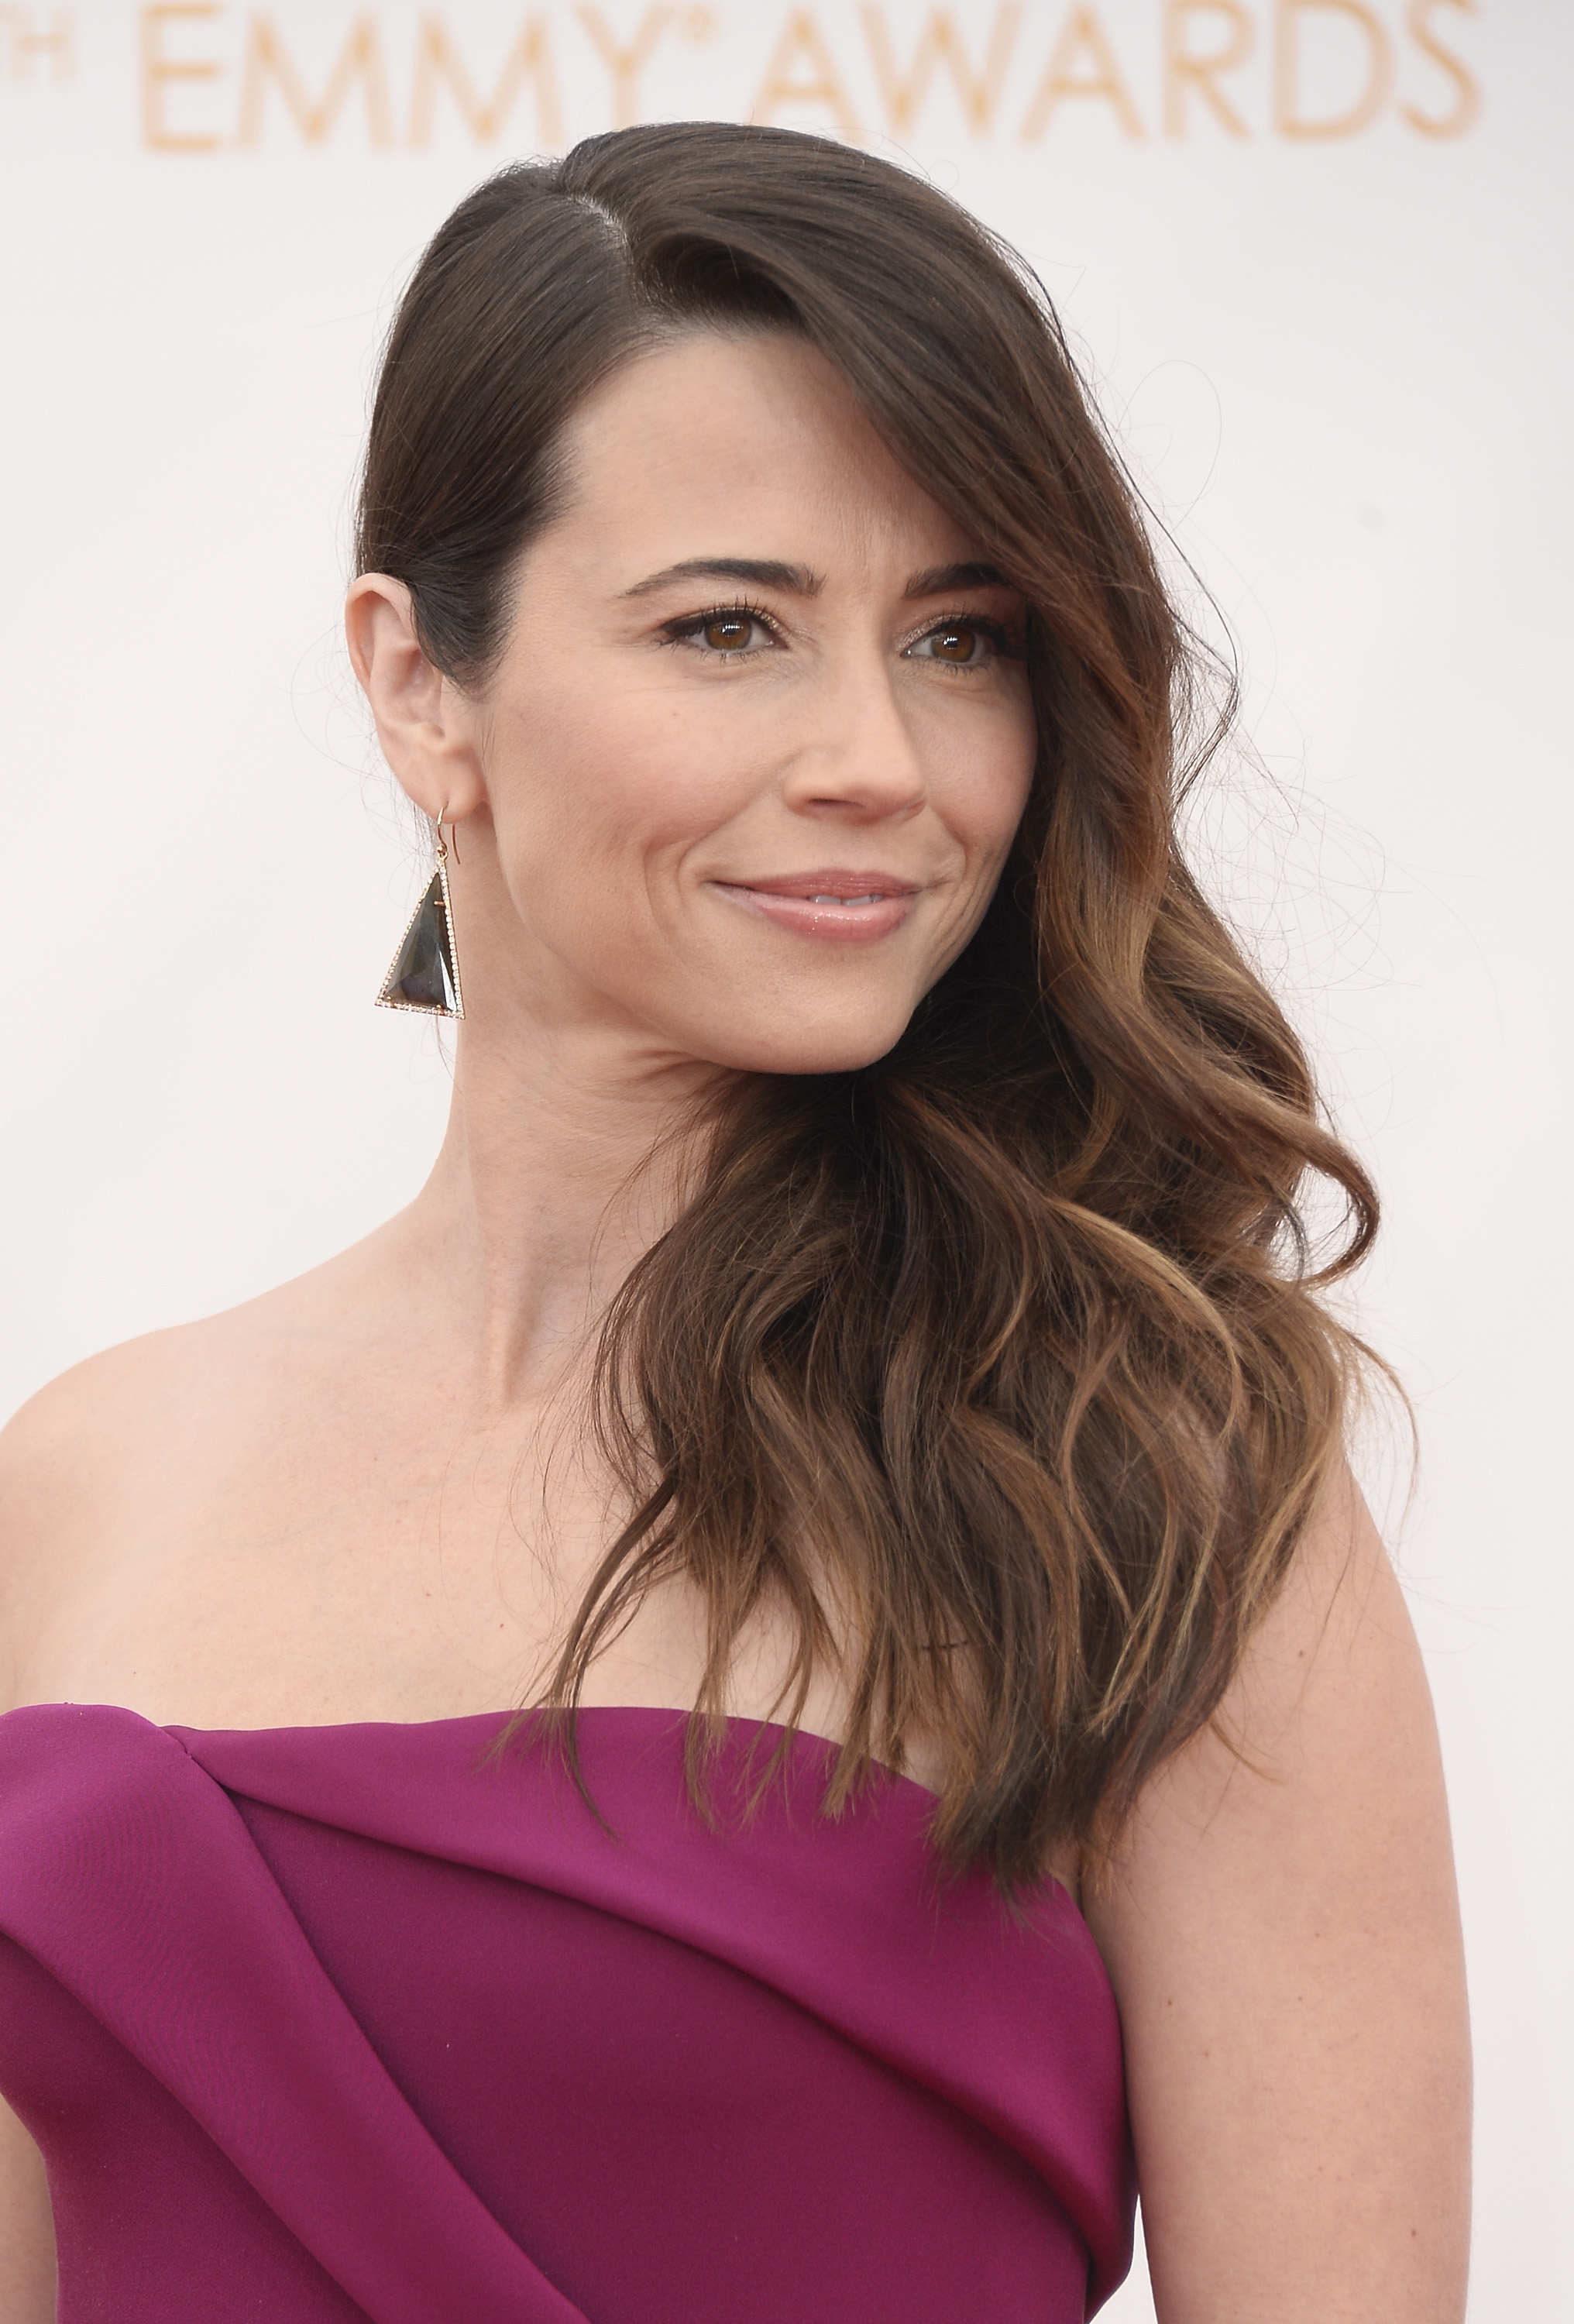 Linda Cardellini nude (39 photos), Ass, Hot, Feet, in bikini 2020